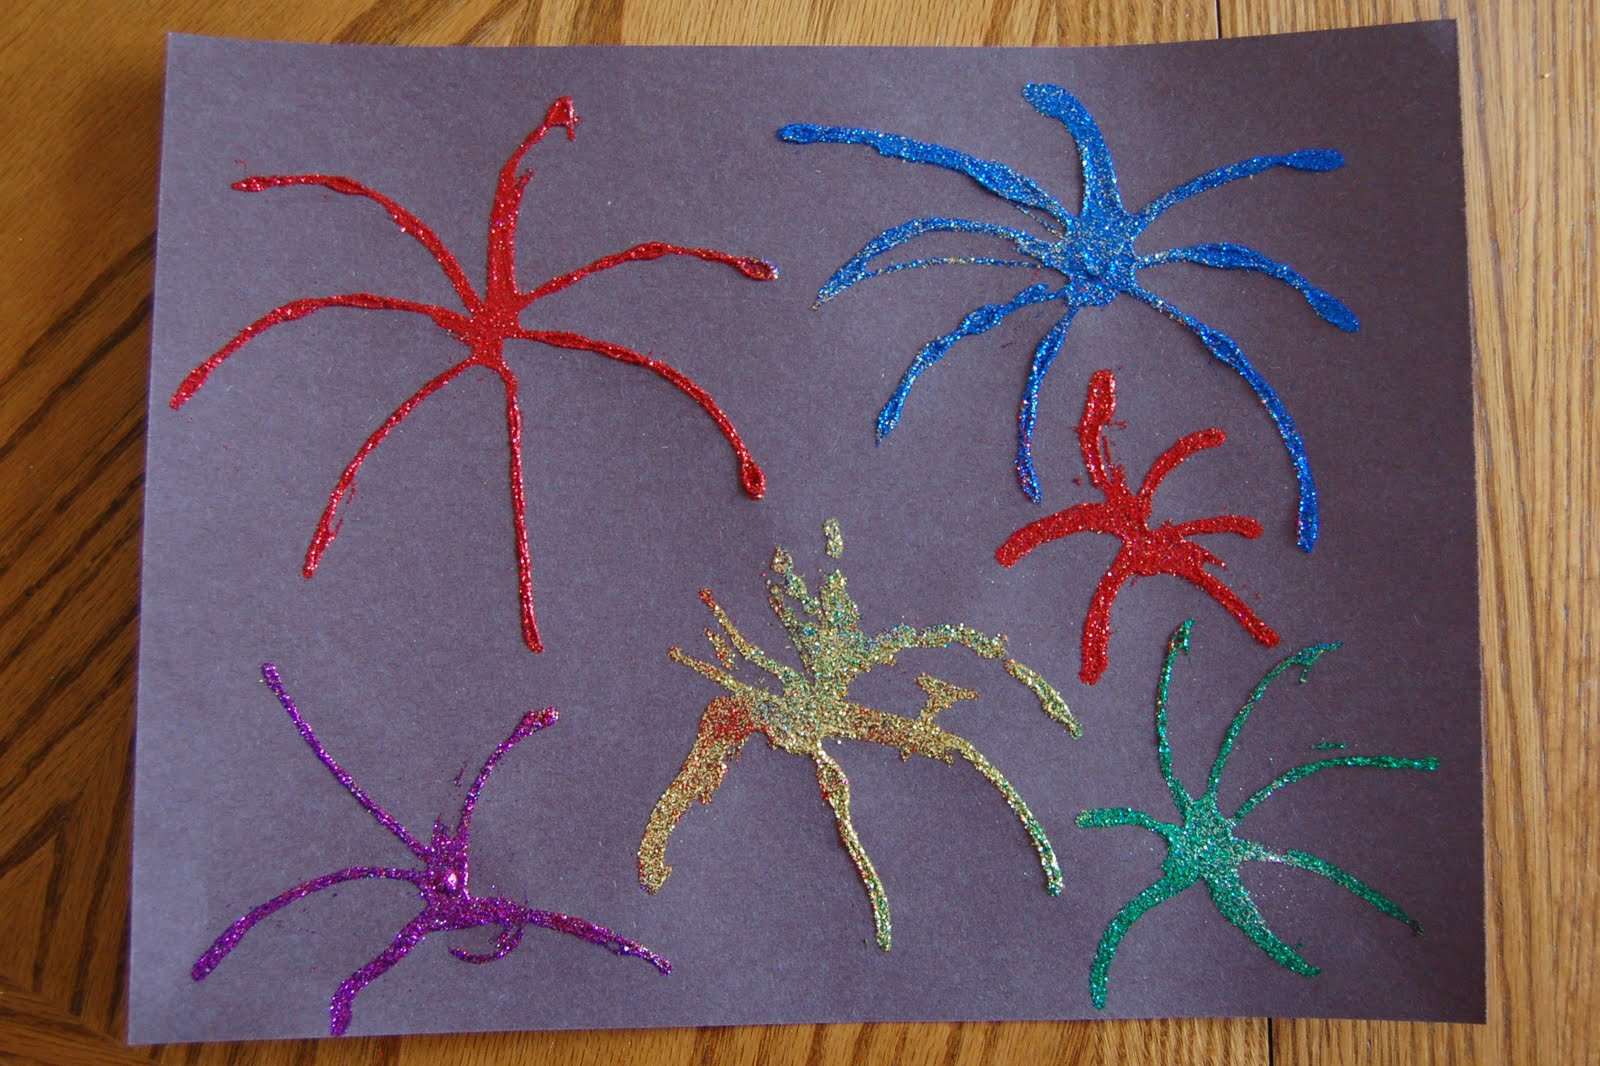 Th of july glitter fireworks picture craft preschool